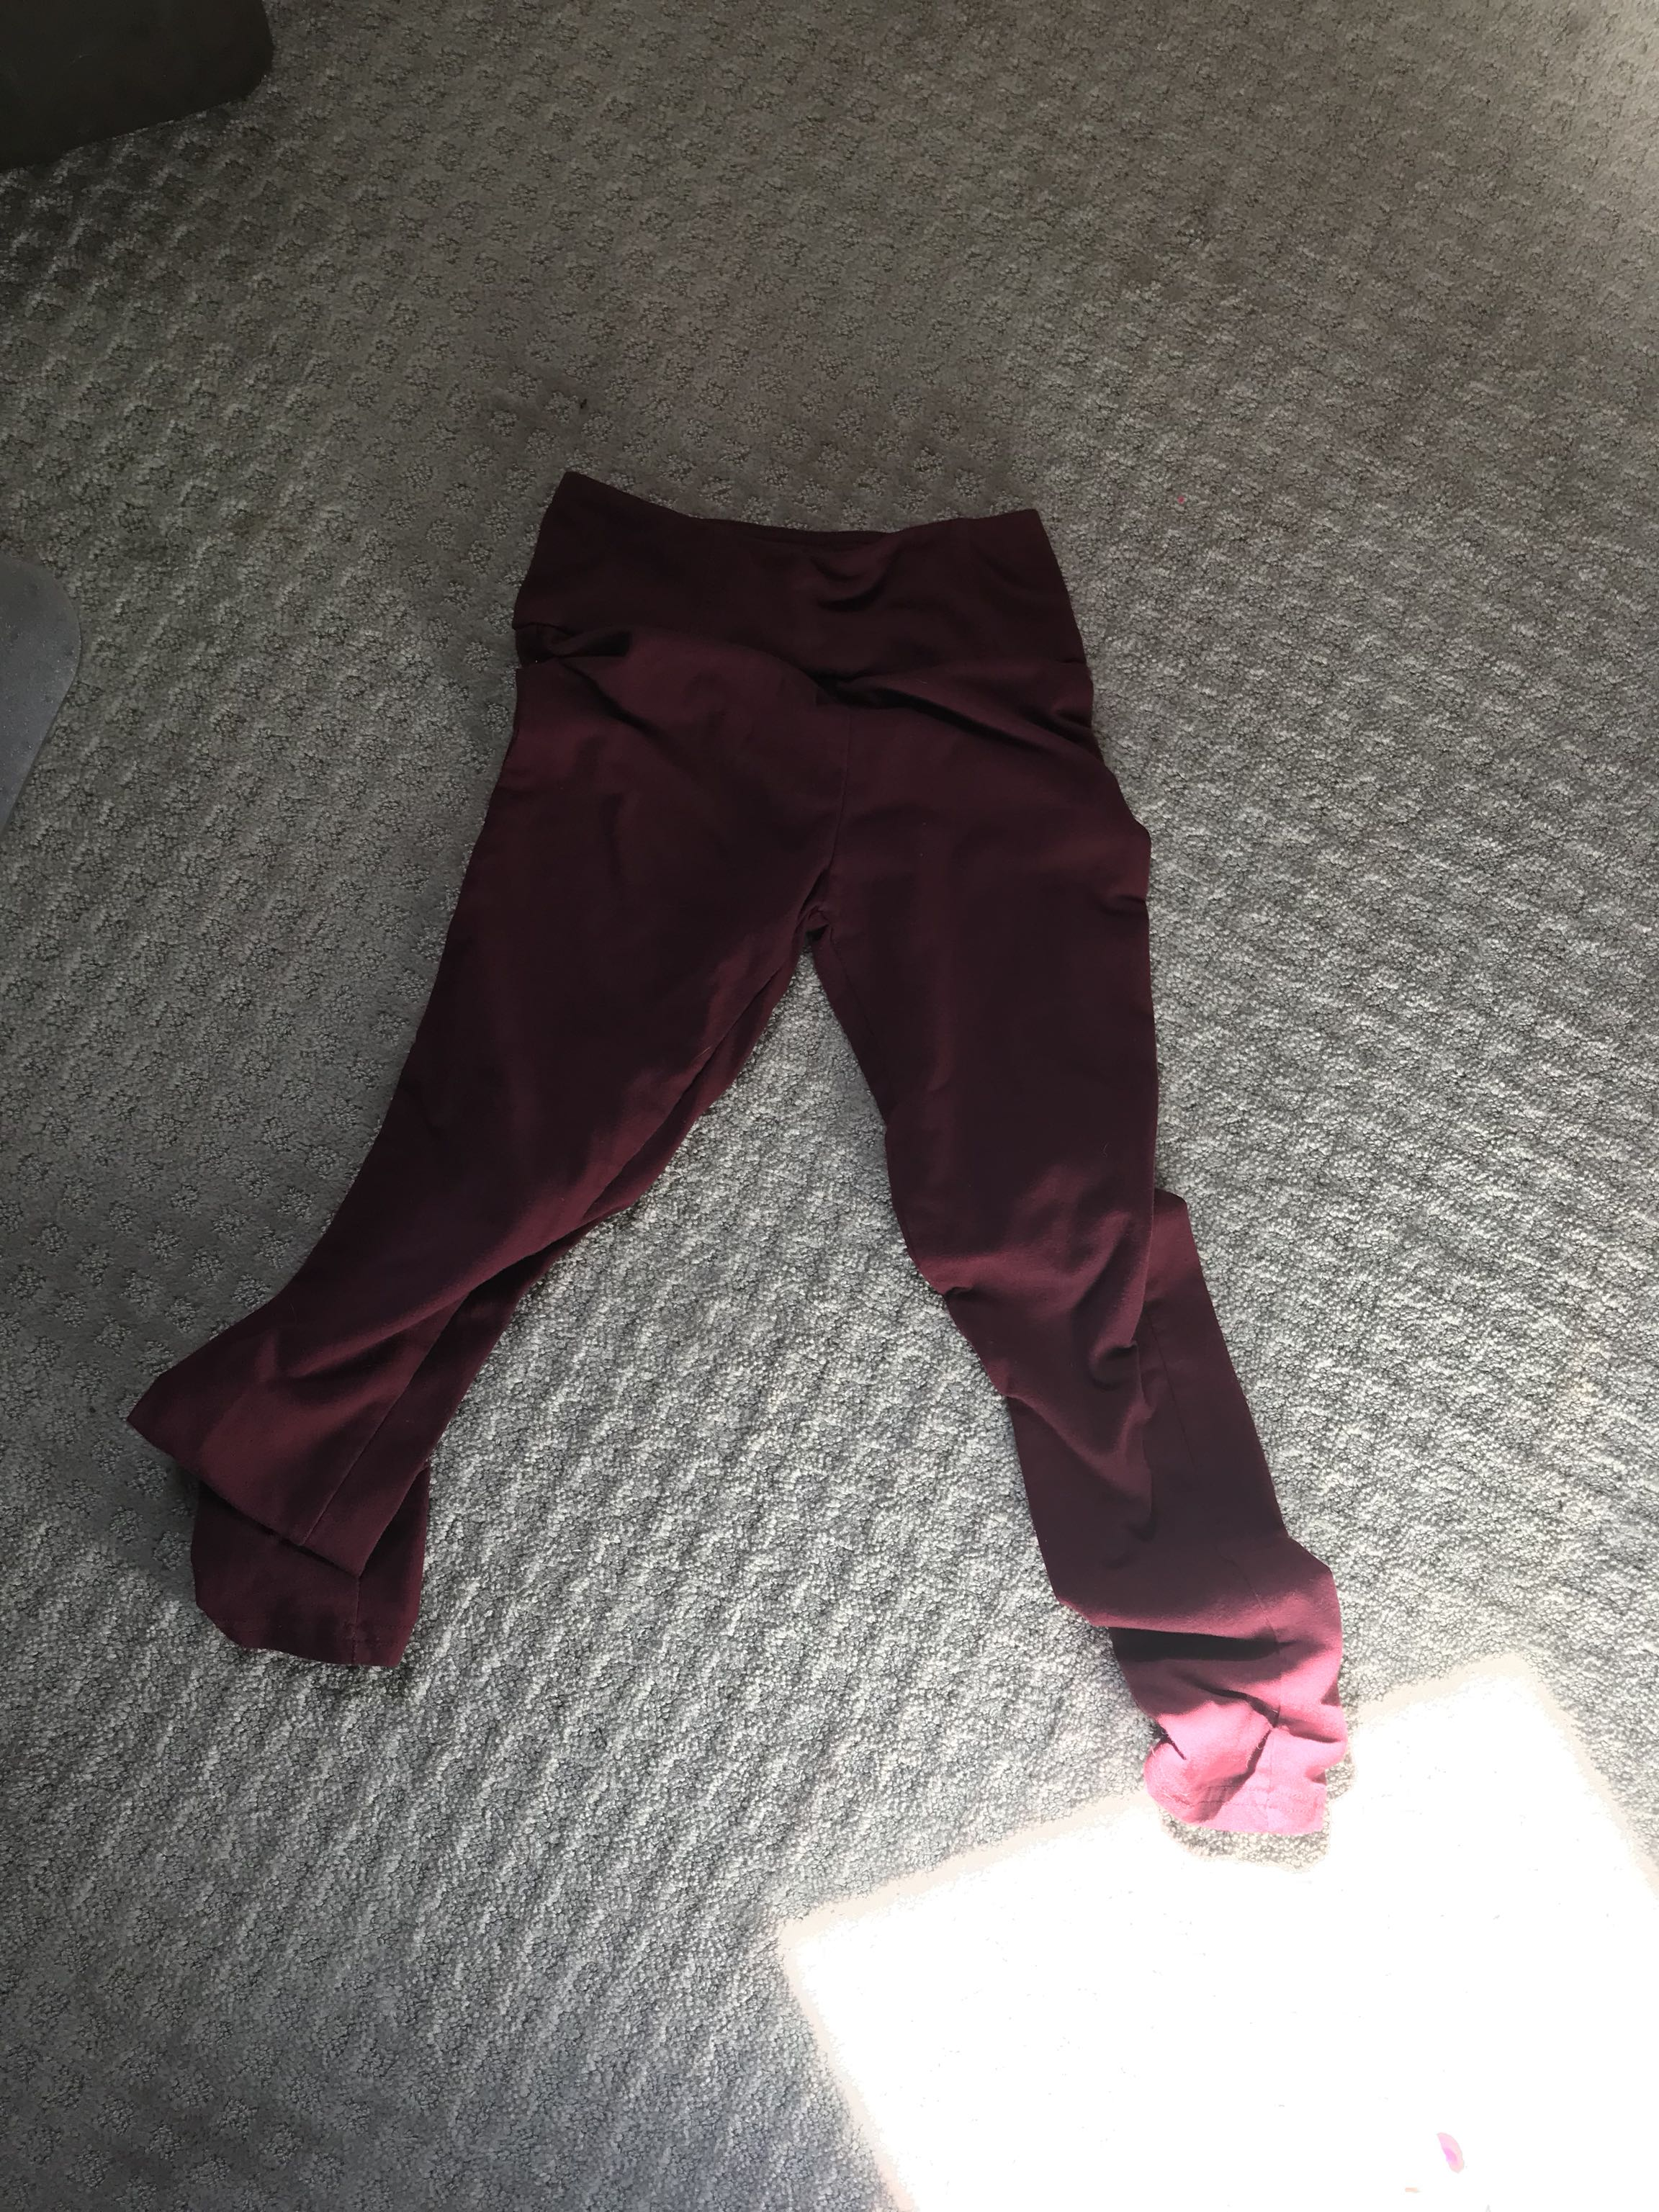 BNWT leggings